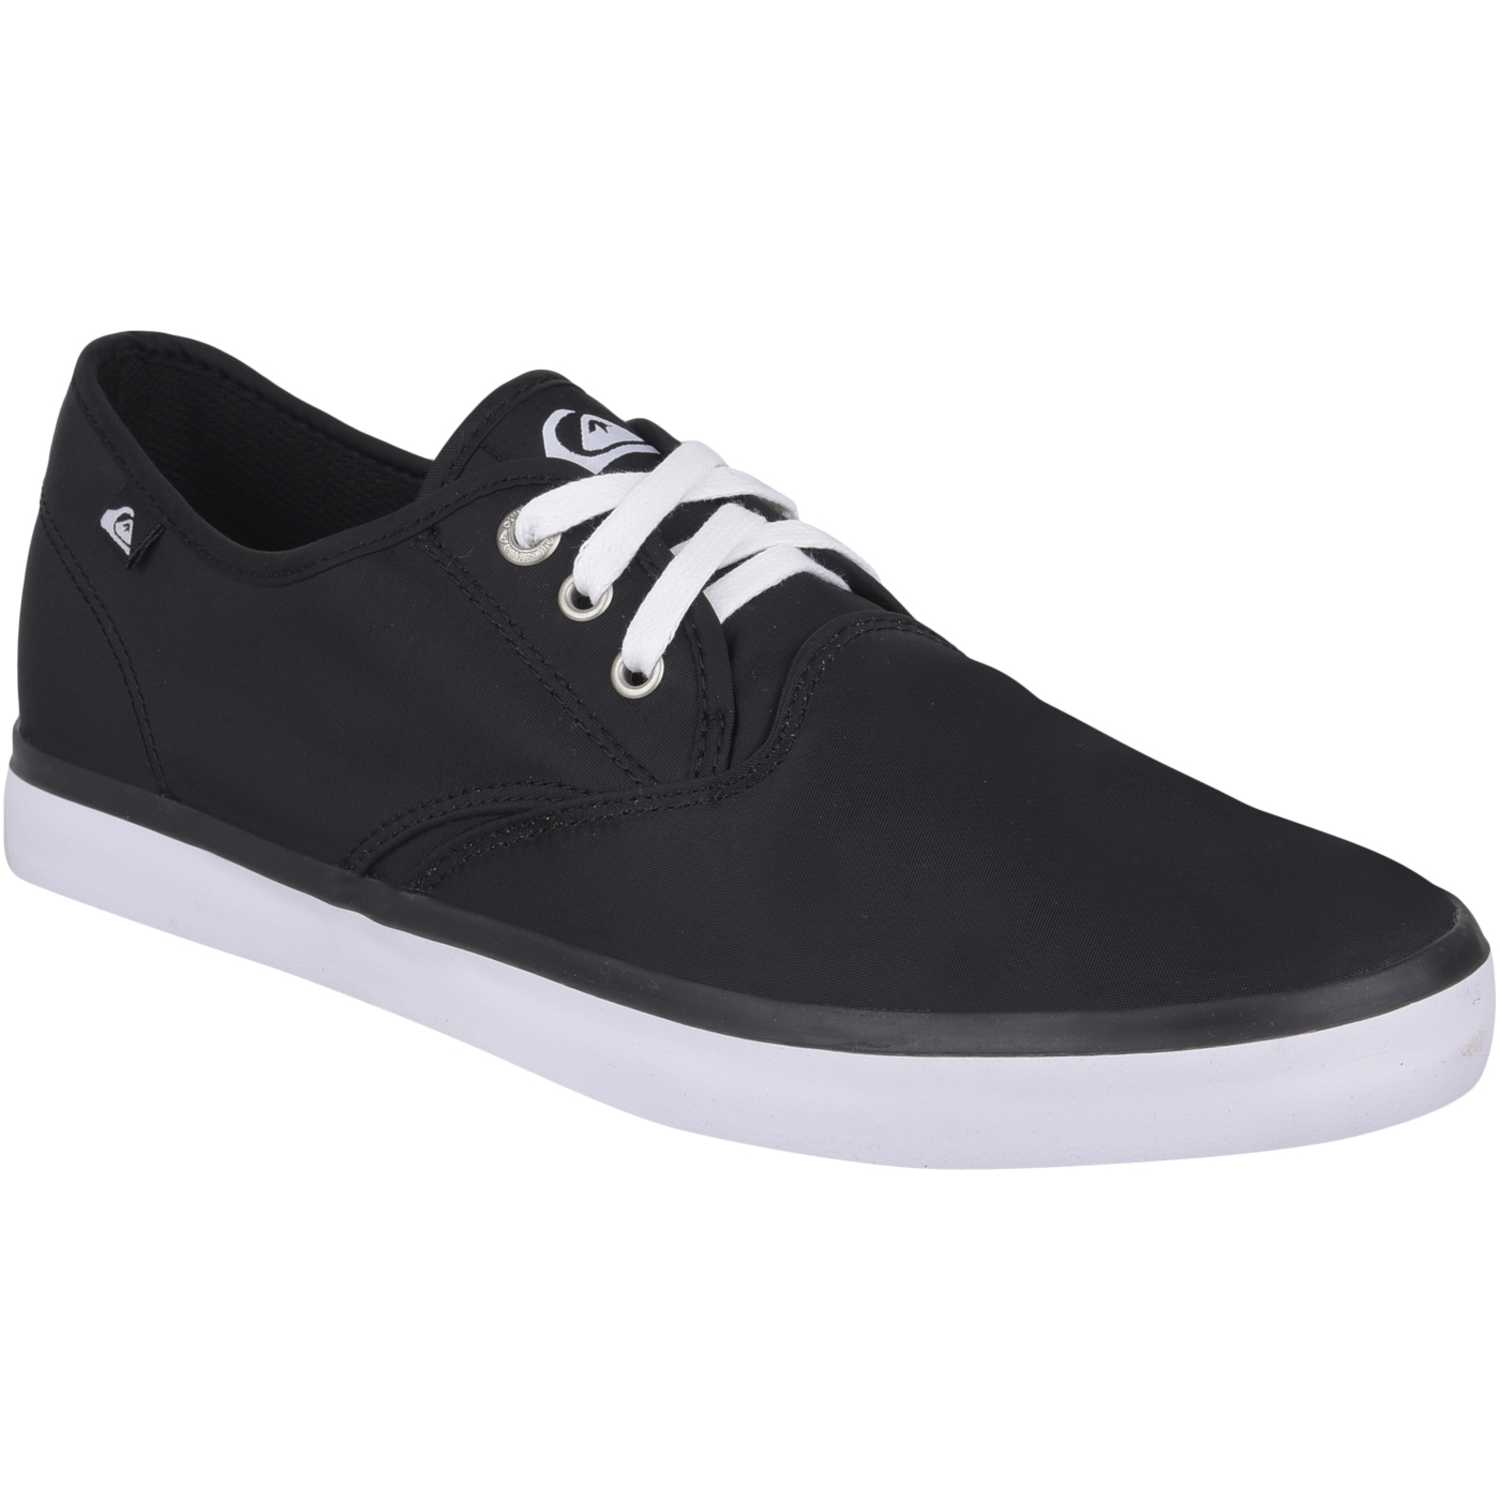 Quiksilver shorebreak nylon Negro Walking